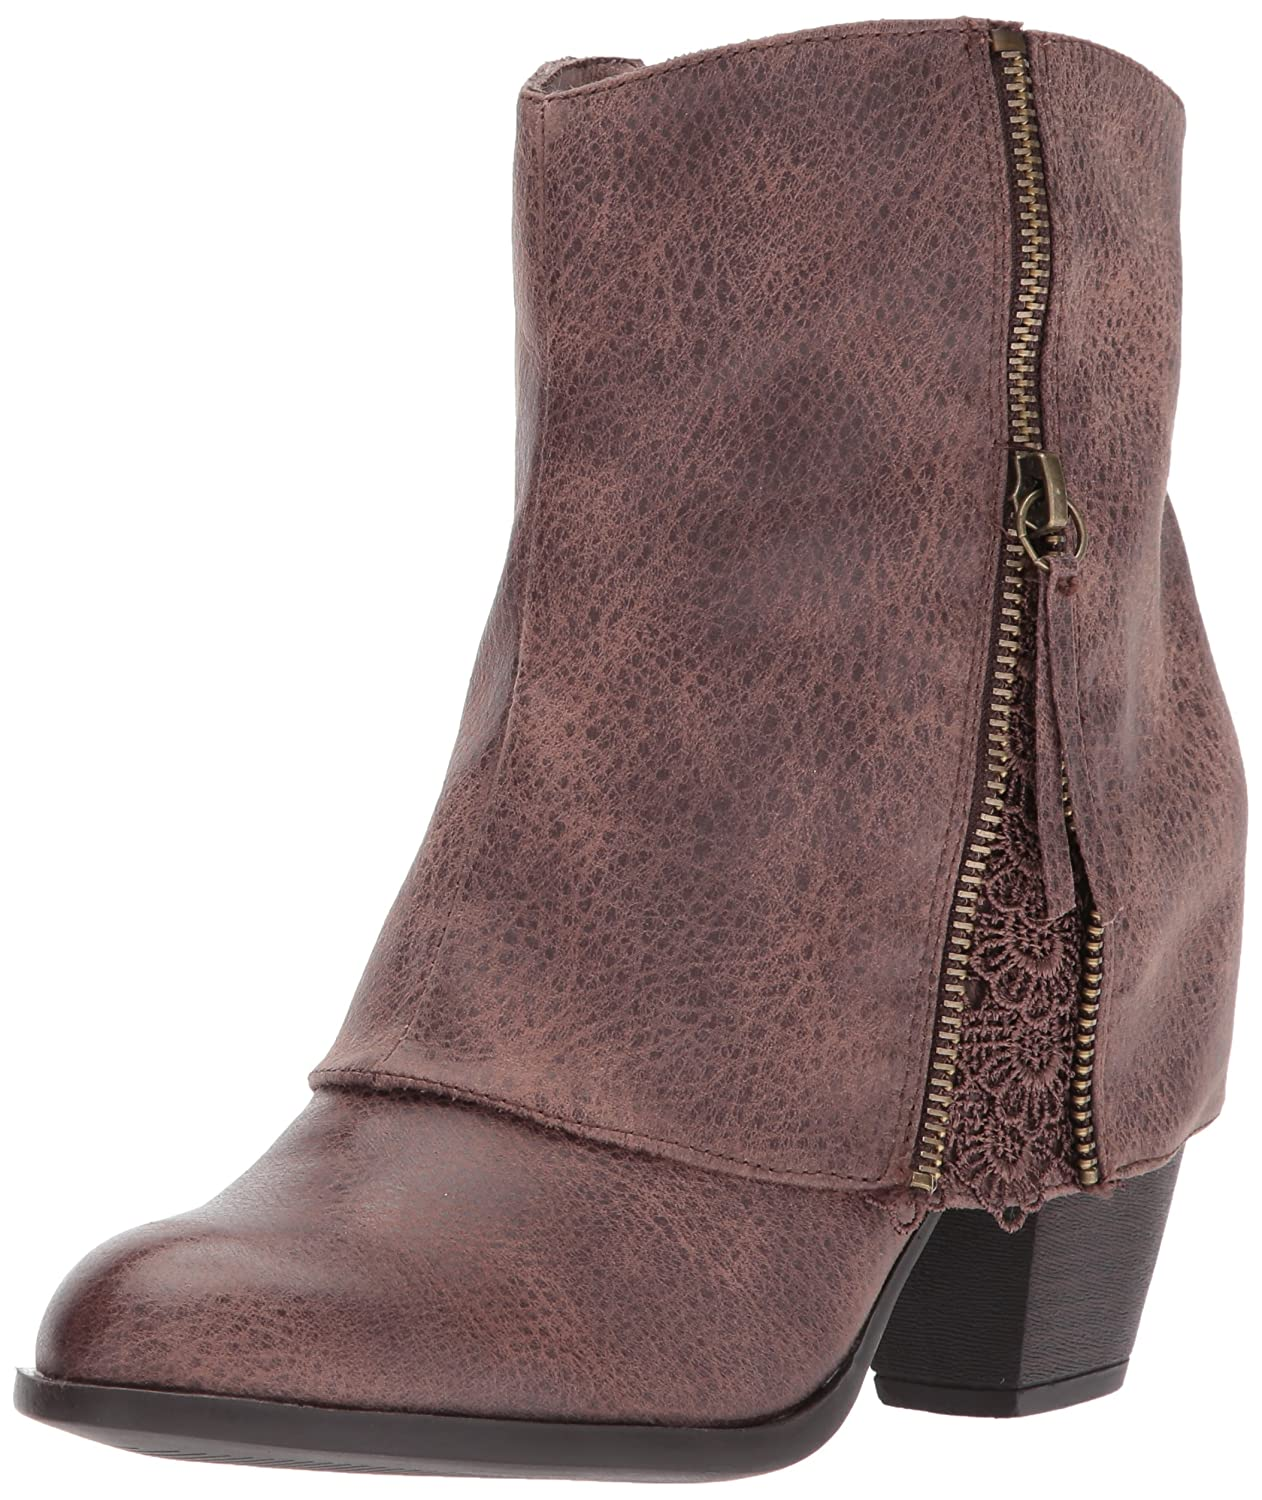 Not Rated Women's Summer Boot B06Y4DC226 6.5 B(M) US|Brown